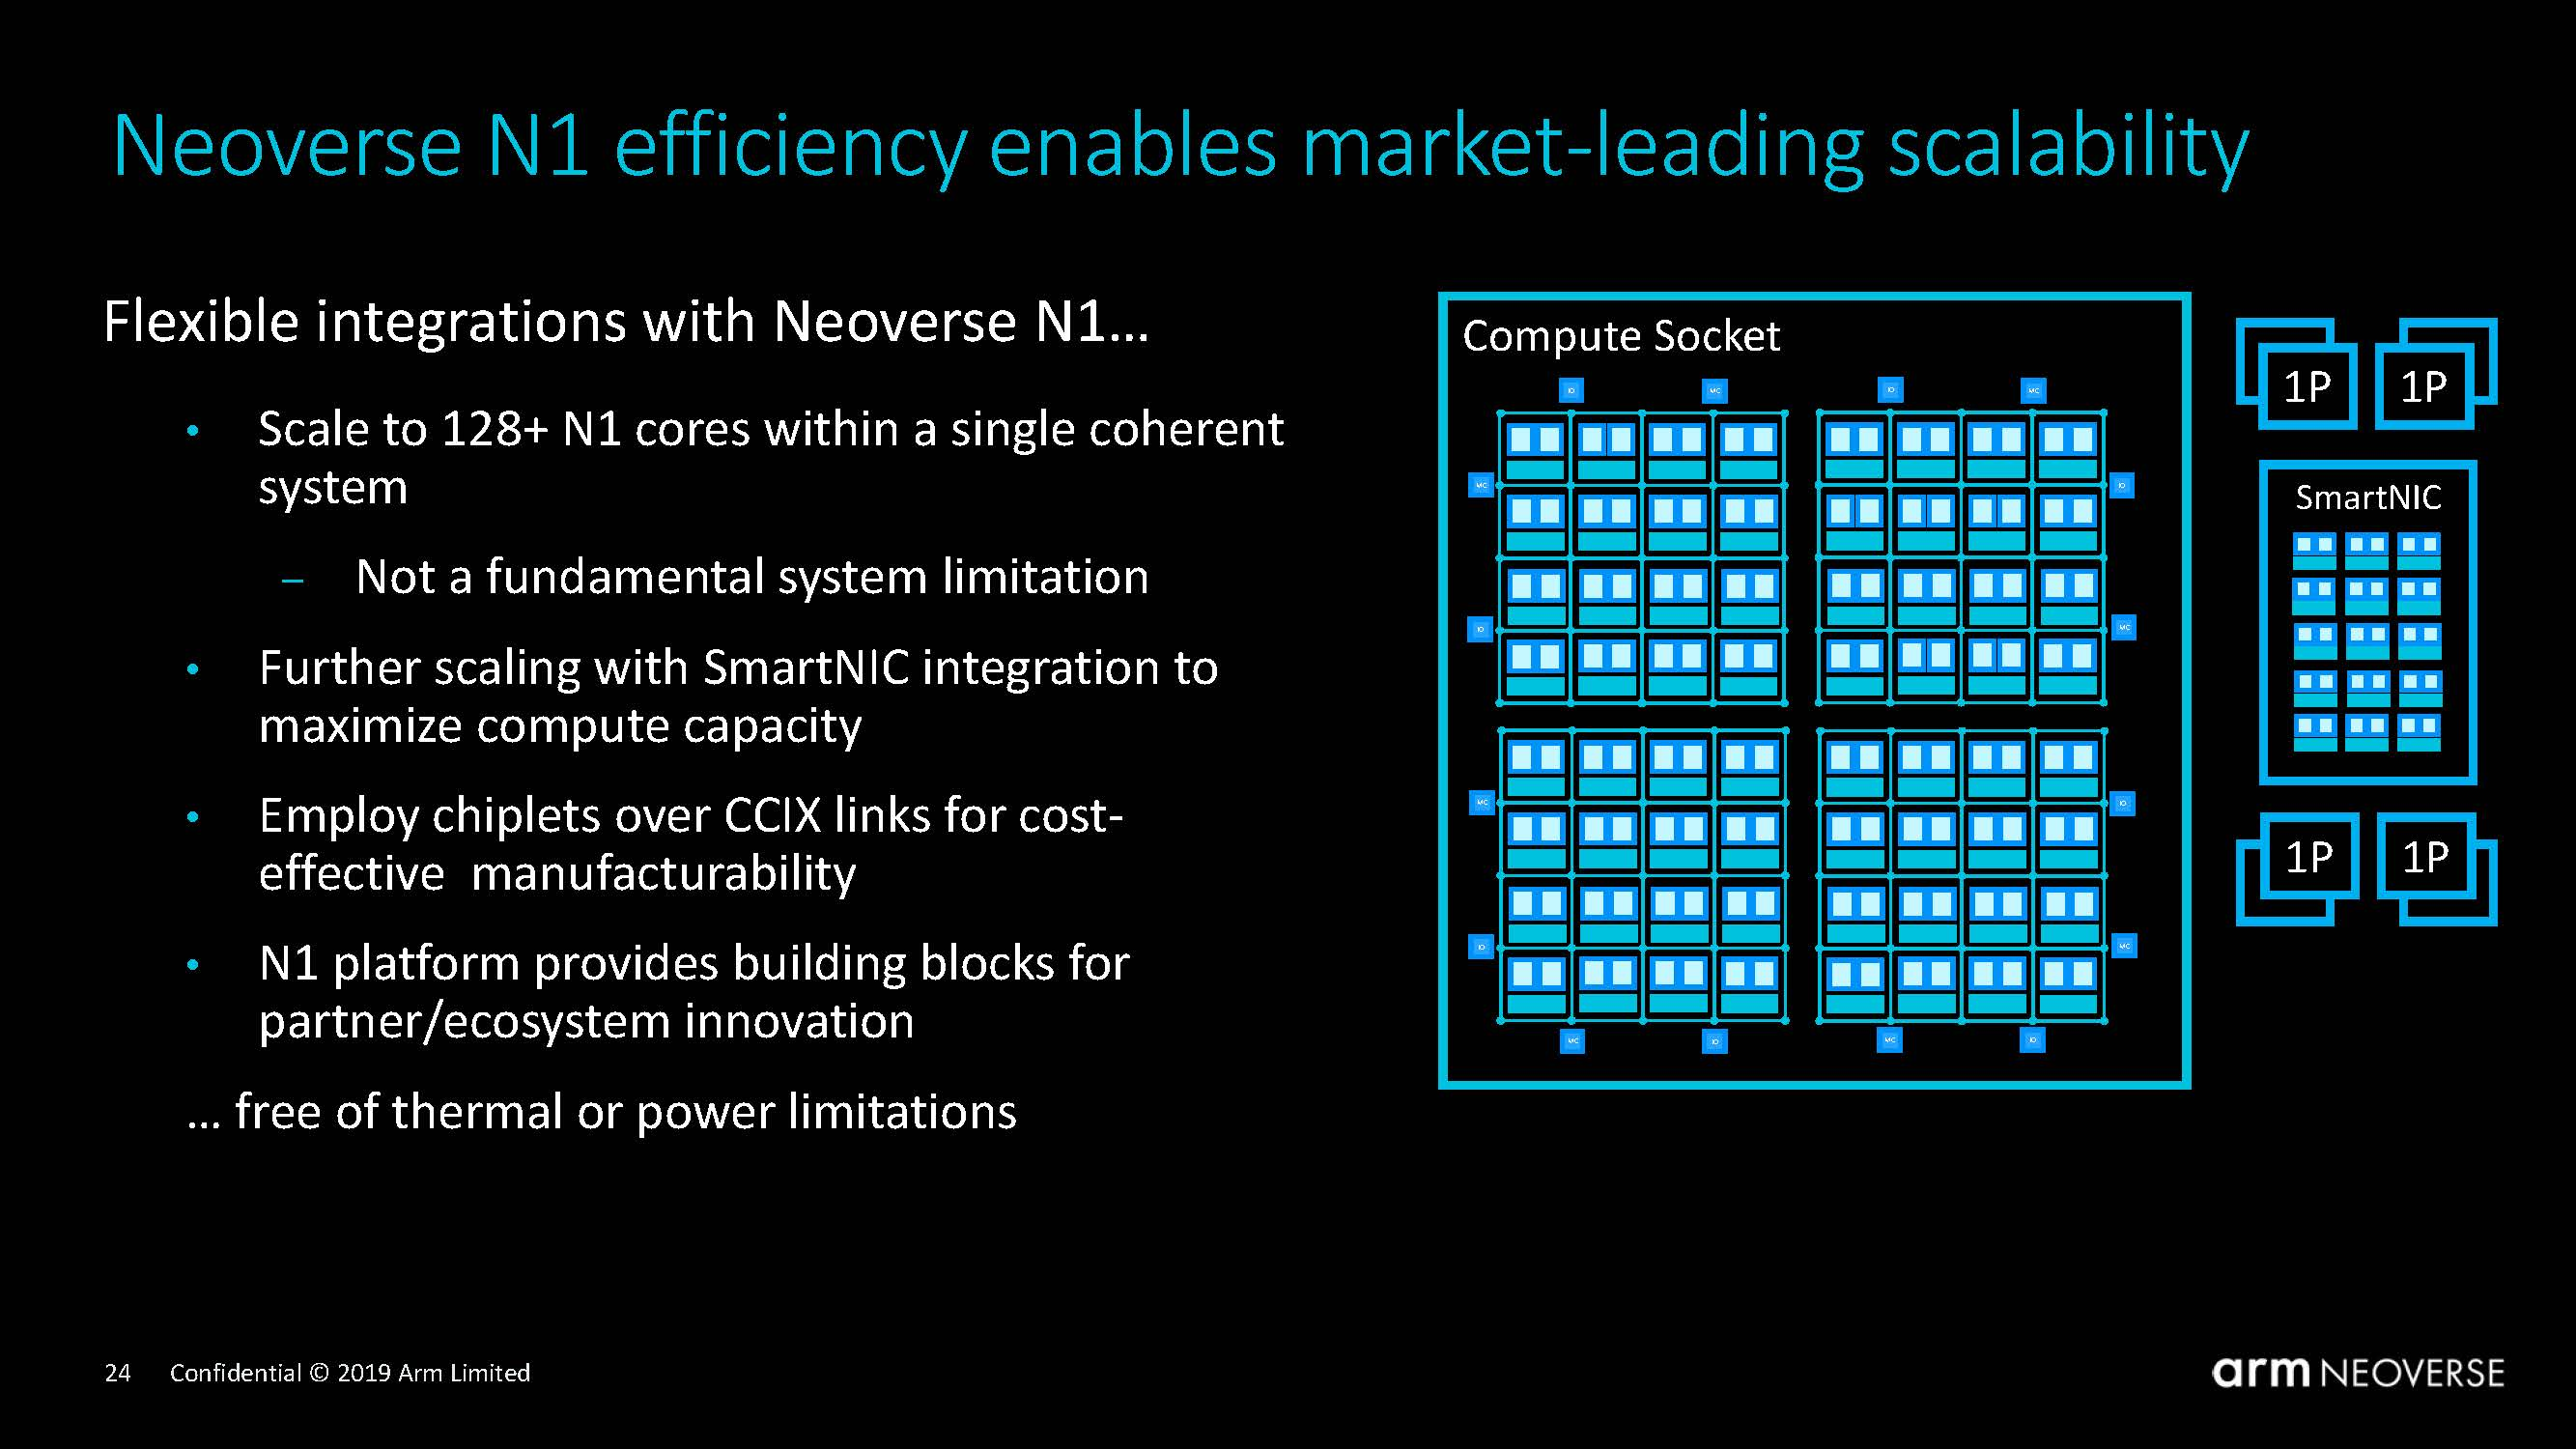 Arm Neoverse N1 Tech Day Efficiency